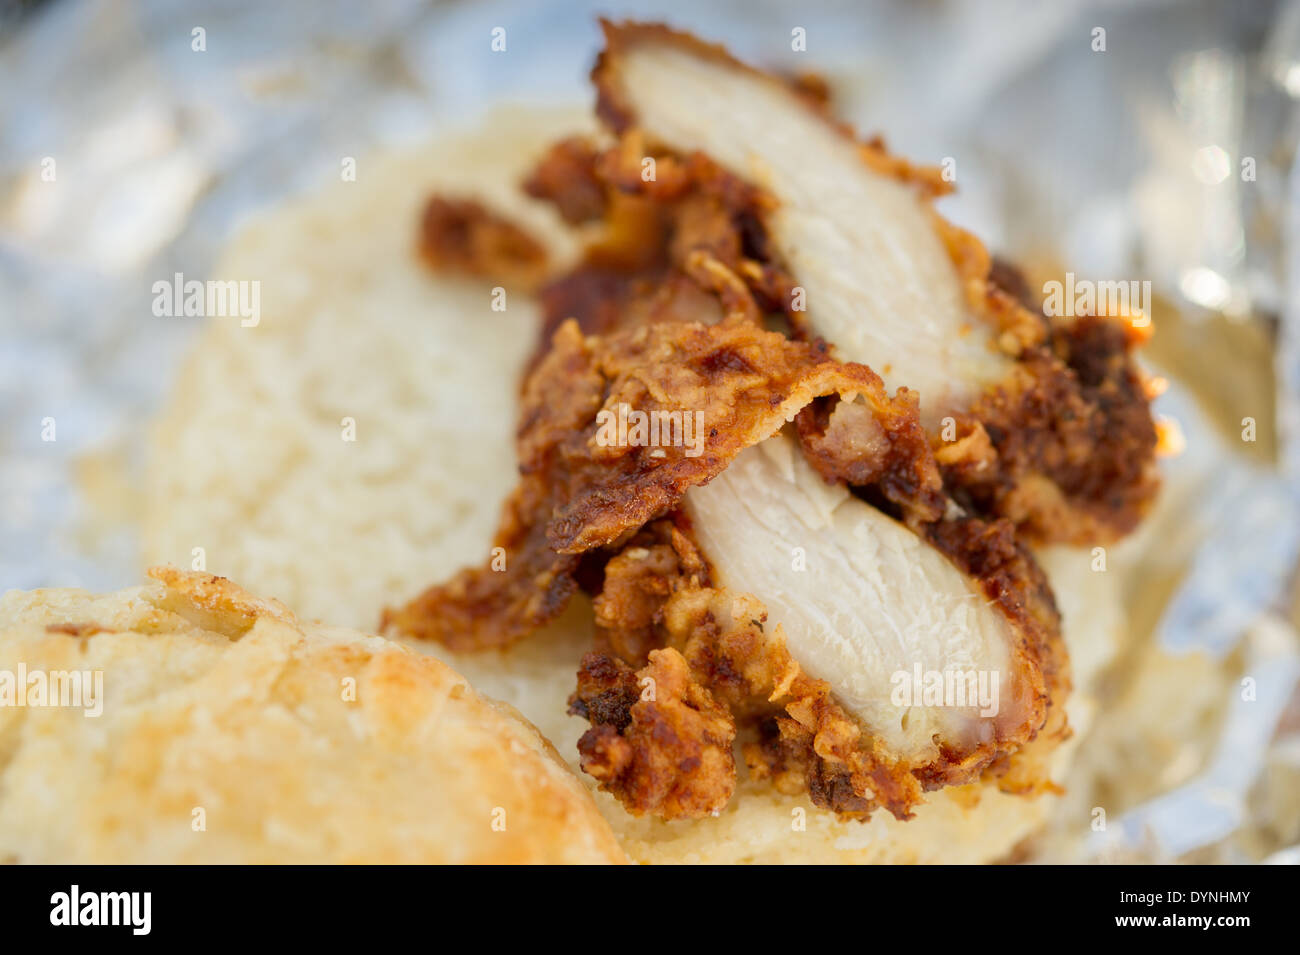 Close-up of fried chicken on a biscuit at the Waverly Farmers Market in Baltimore, Maryland - Stock Image